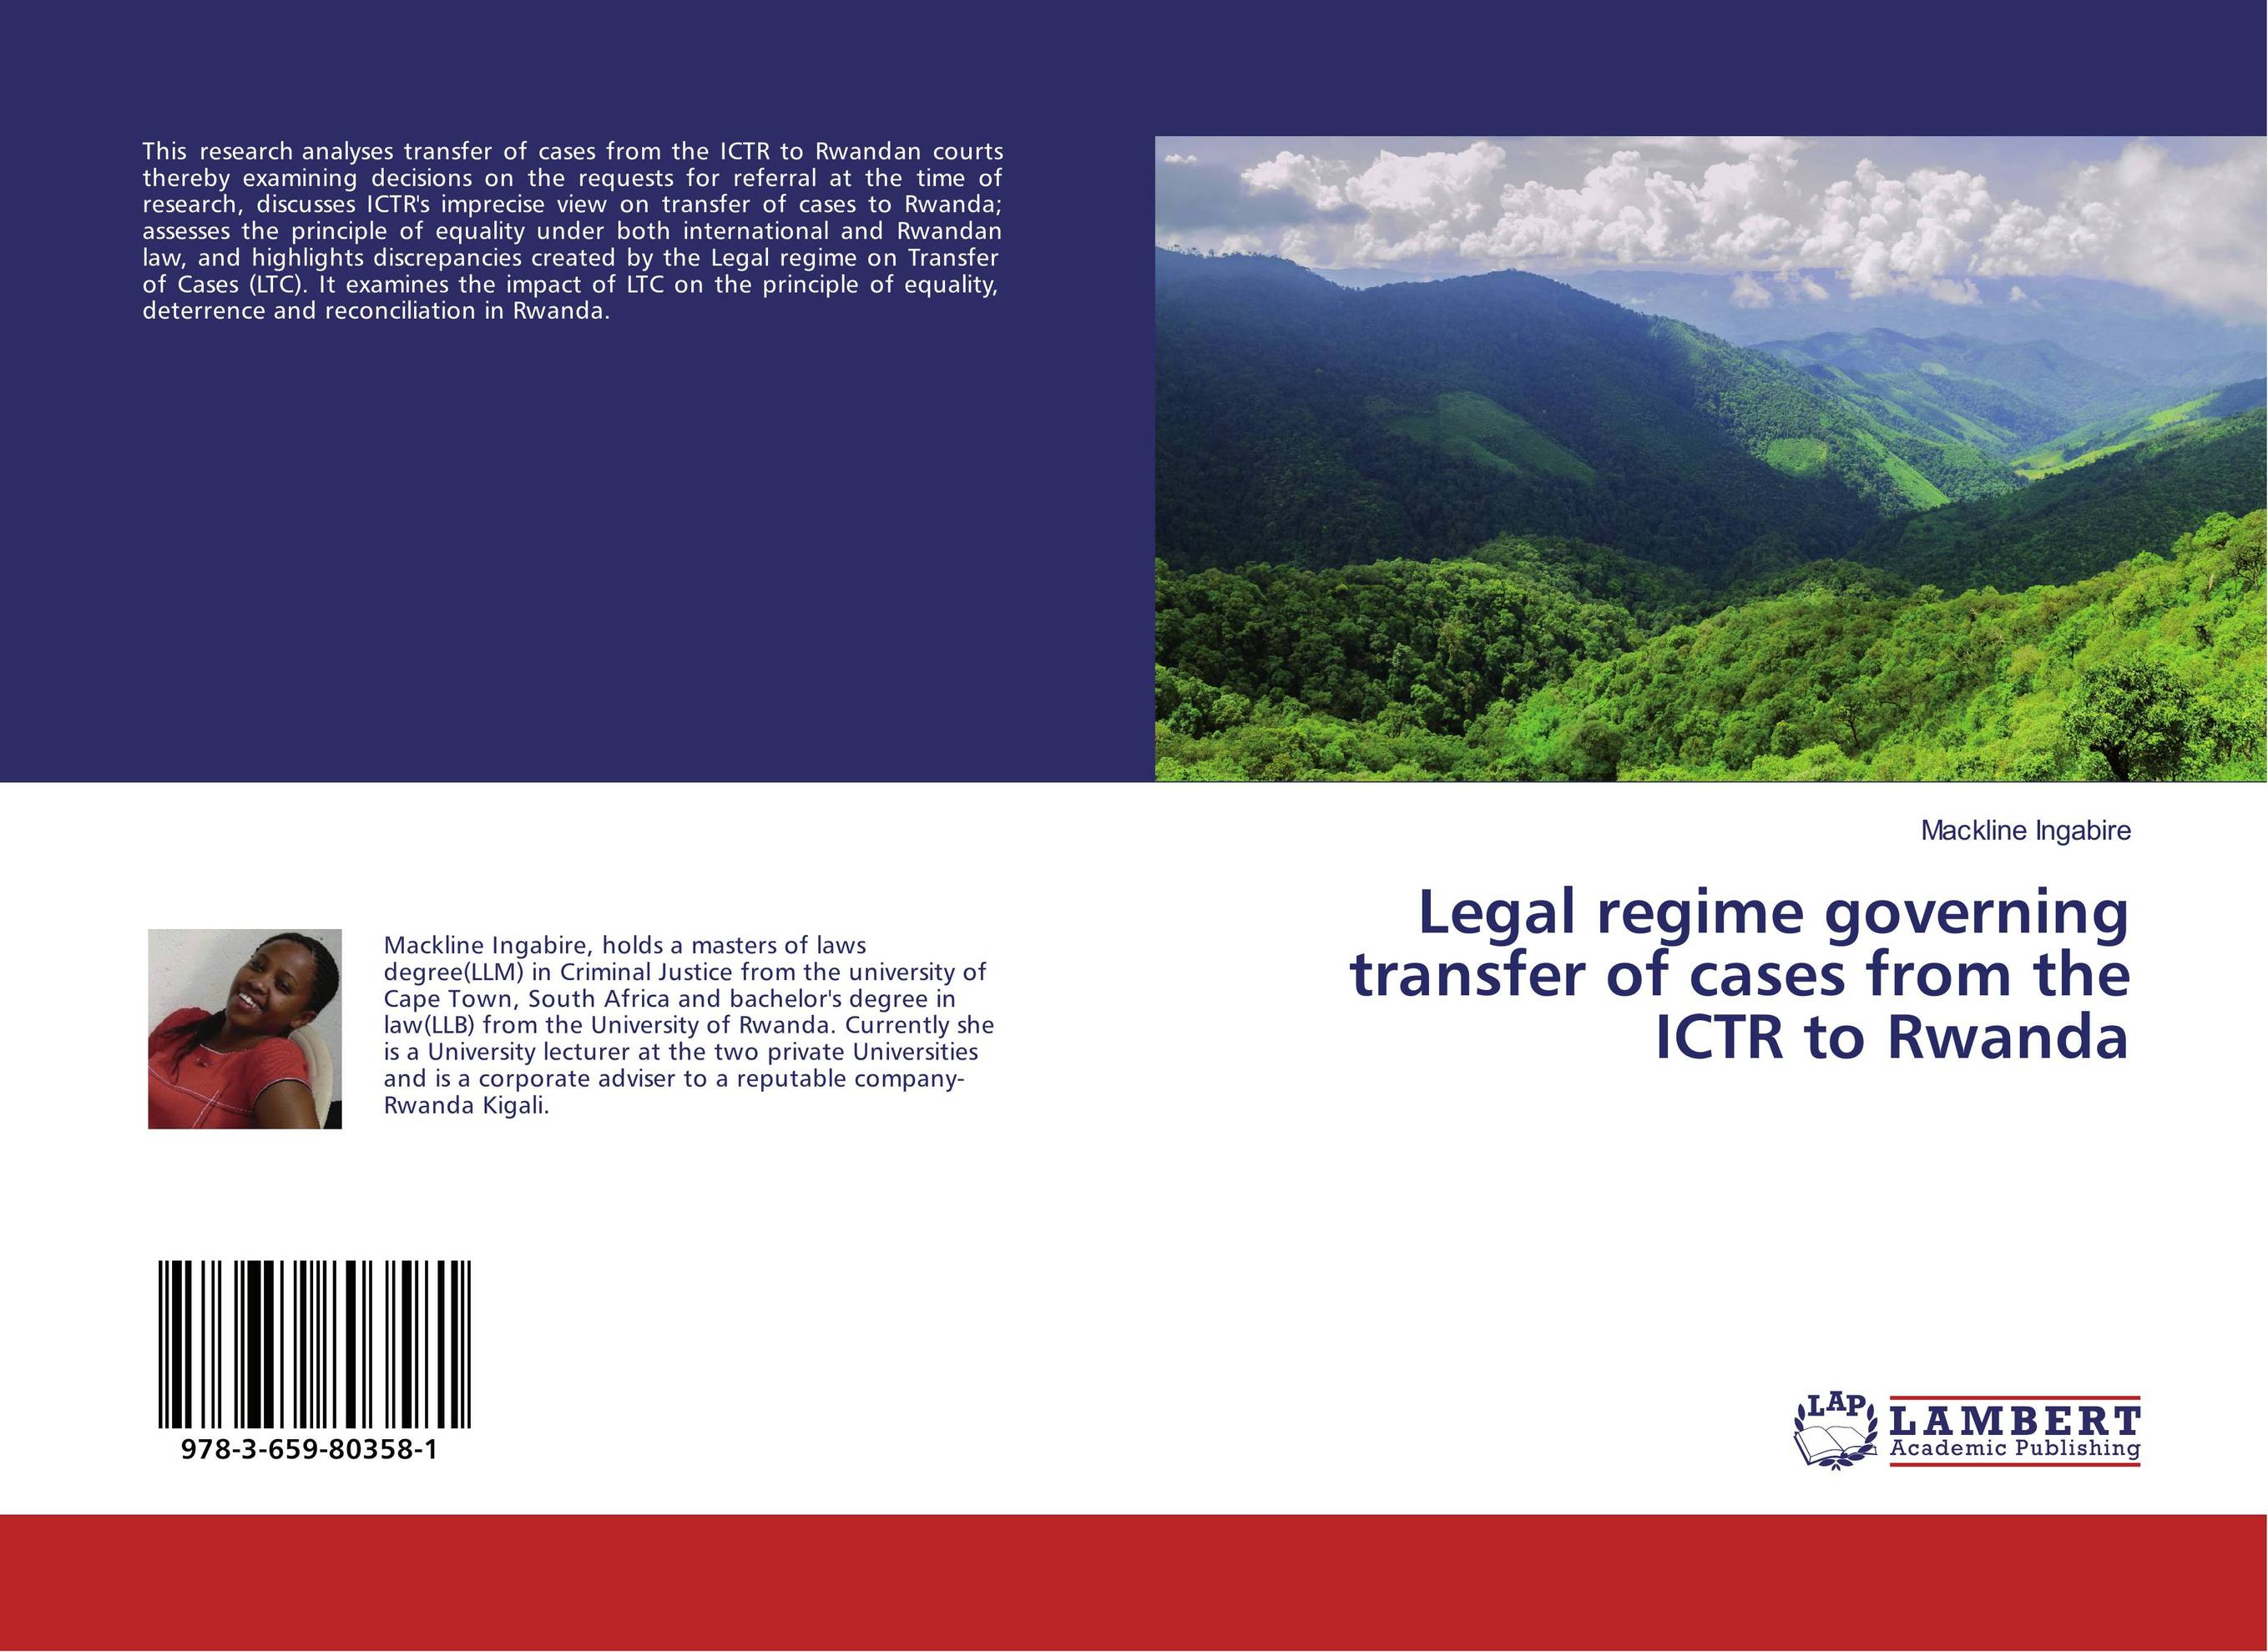 Legal regime governing transfer of cases from the ICTR to Rwanda cases materials and text on consumer law